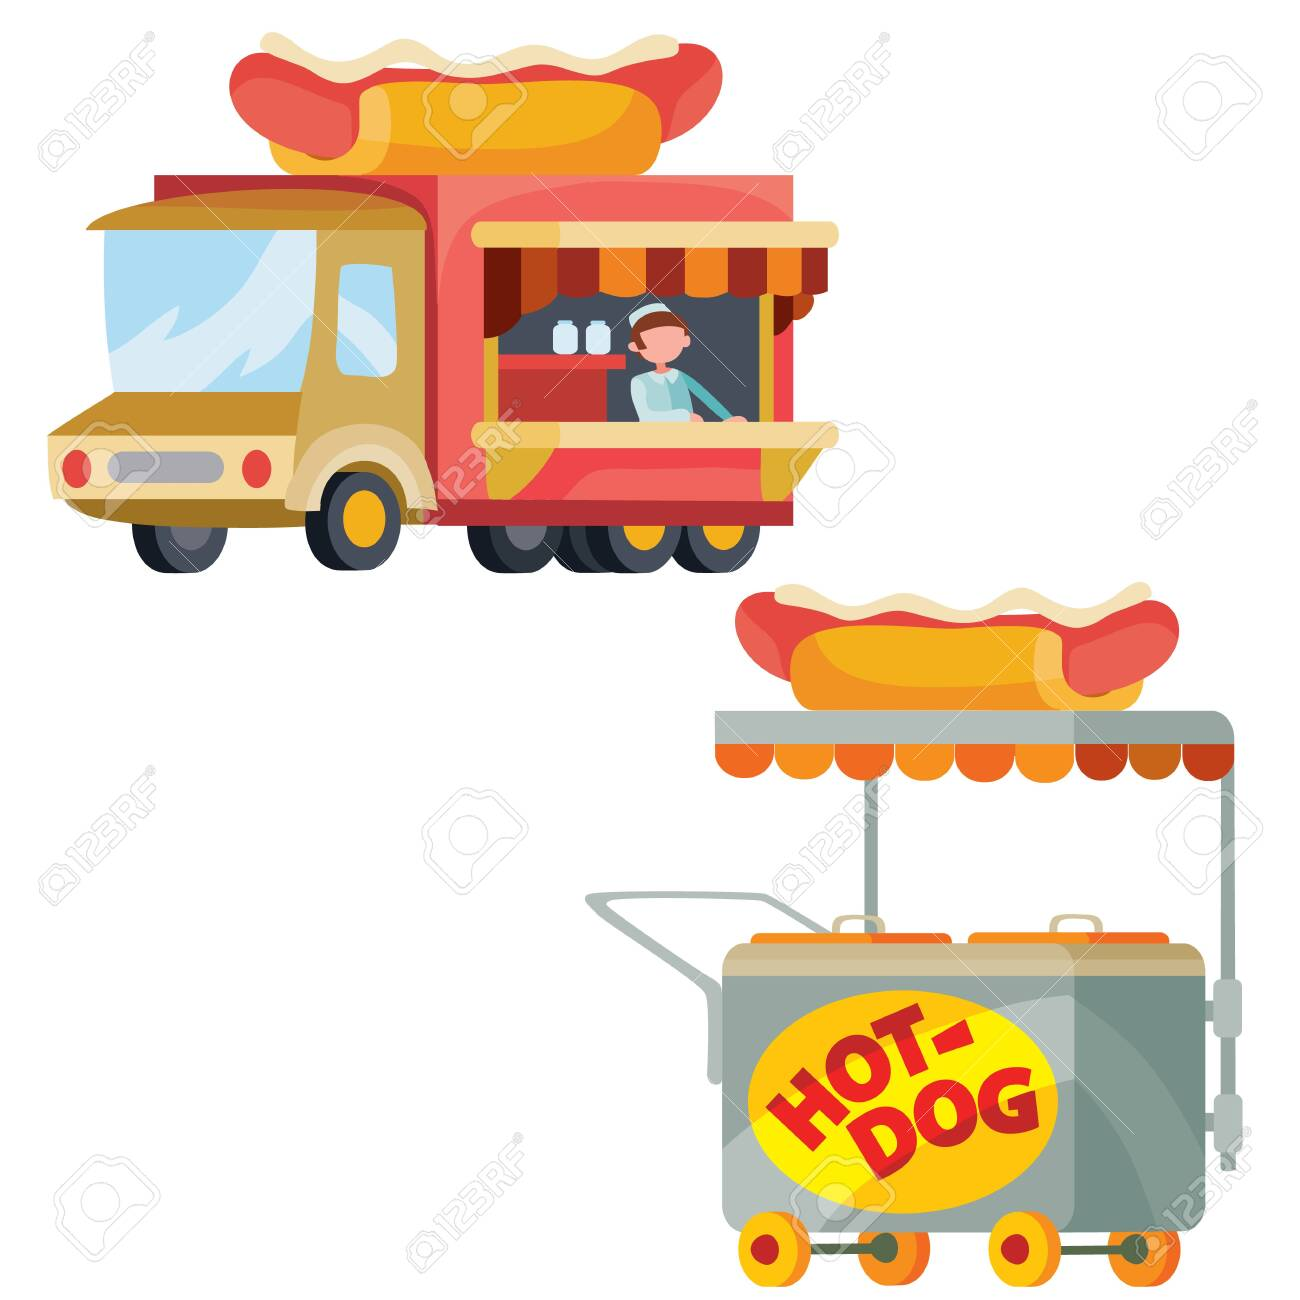 Food Truck And Street Cart Sell Hot Dogs Isolated Object On Royalty Free Cliparts Vectors And Stock Illustration Image 138111594